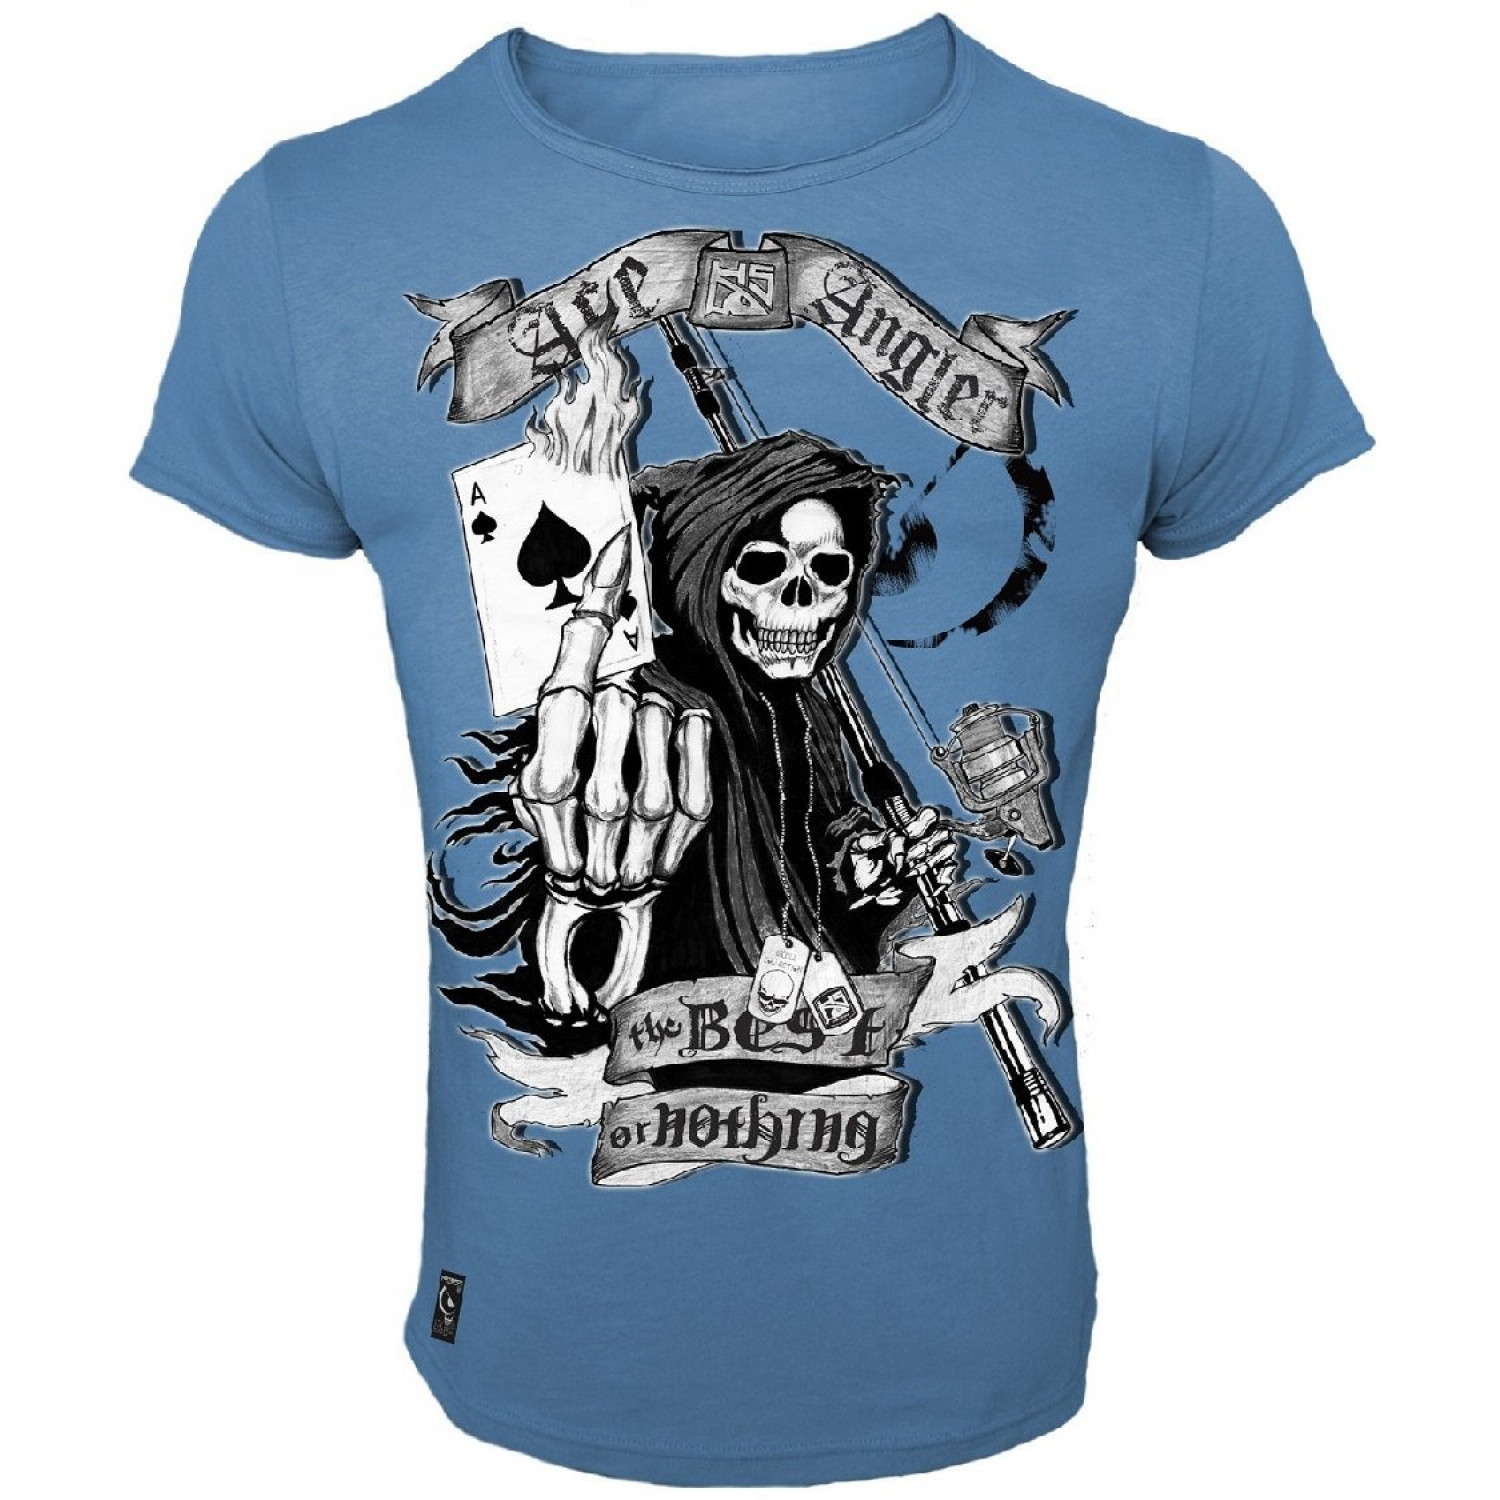 Skull Collection Hotspot Design T-Shirt Ace Angler Freizeitshirt